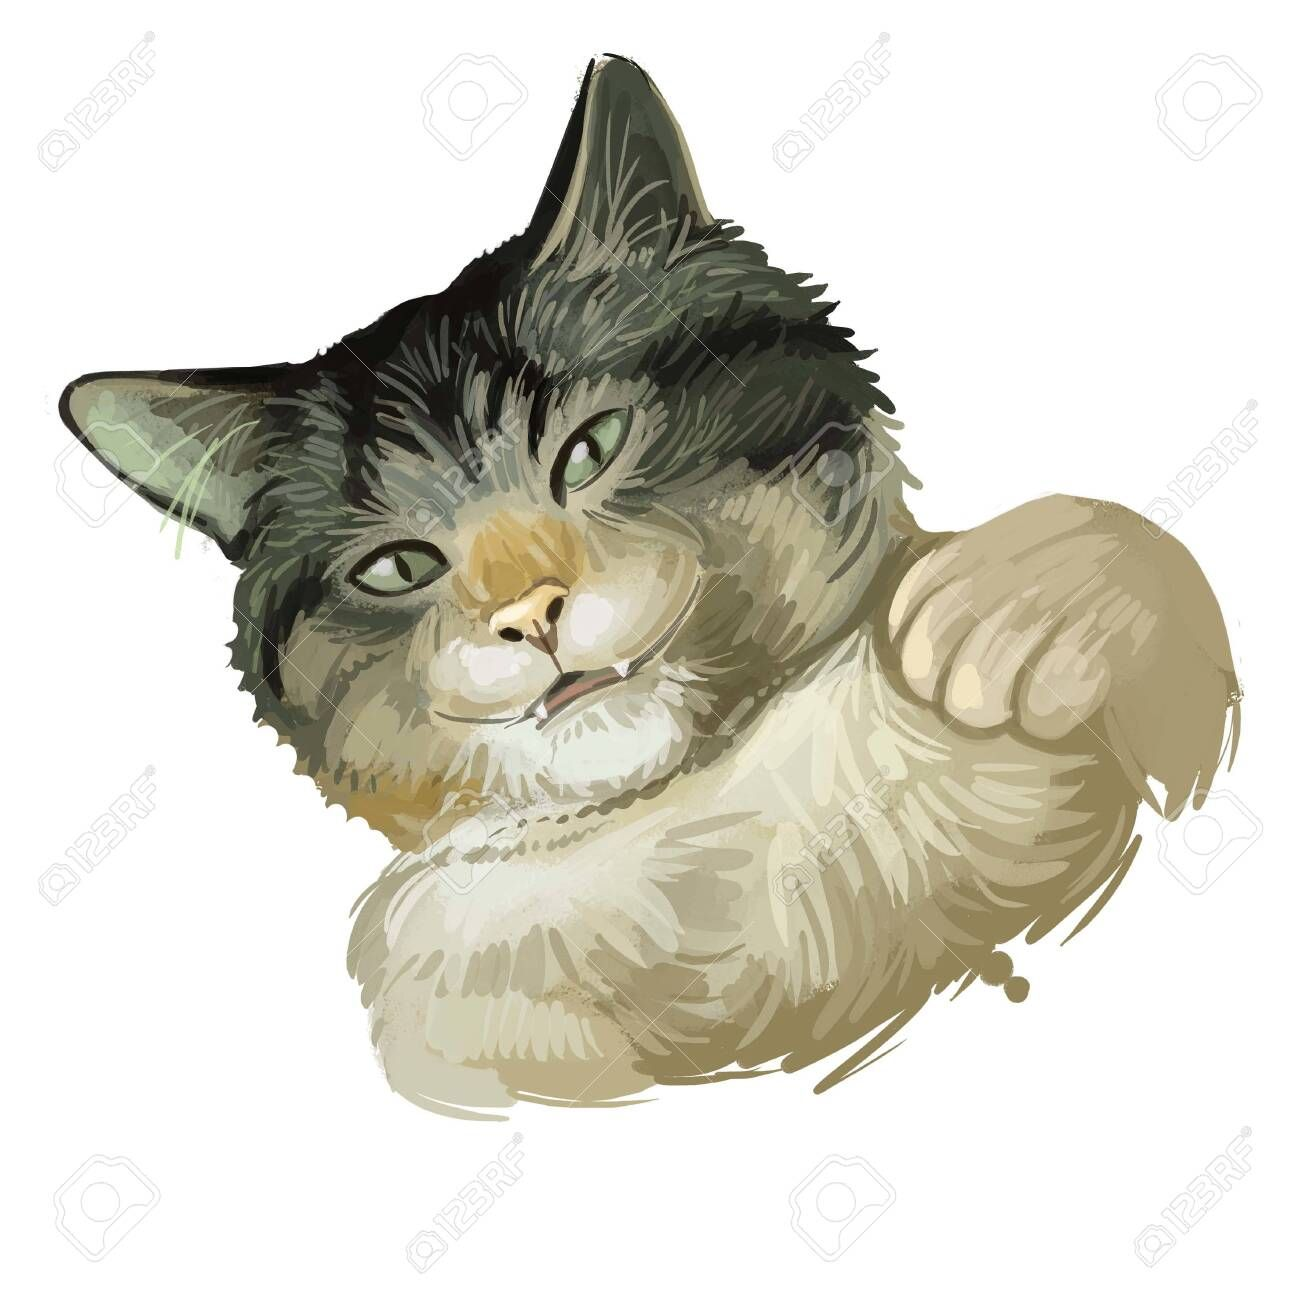 Dragon Li Or Chinese China Li Hua Cat Isolated On White Digital Art Illustration Of Hand In 2020 Digital Art Illustration Illustration Art Material Design Background